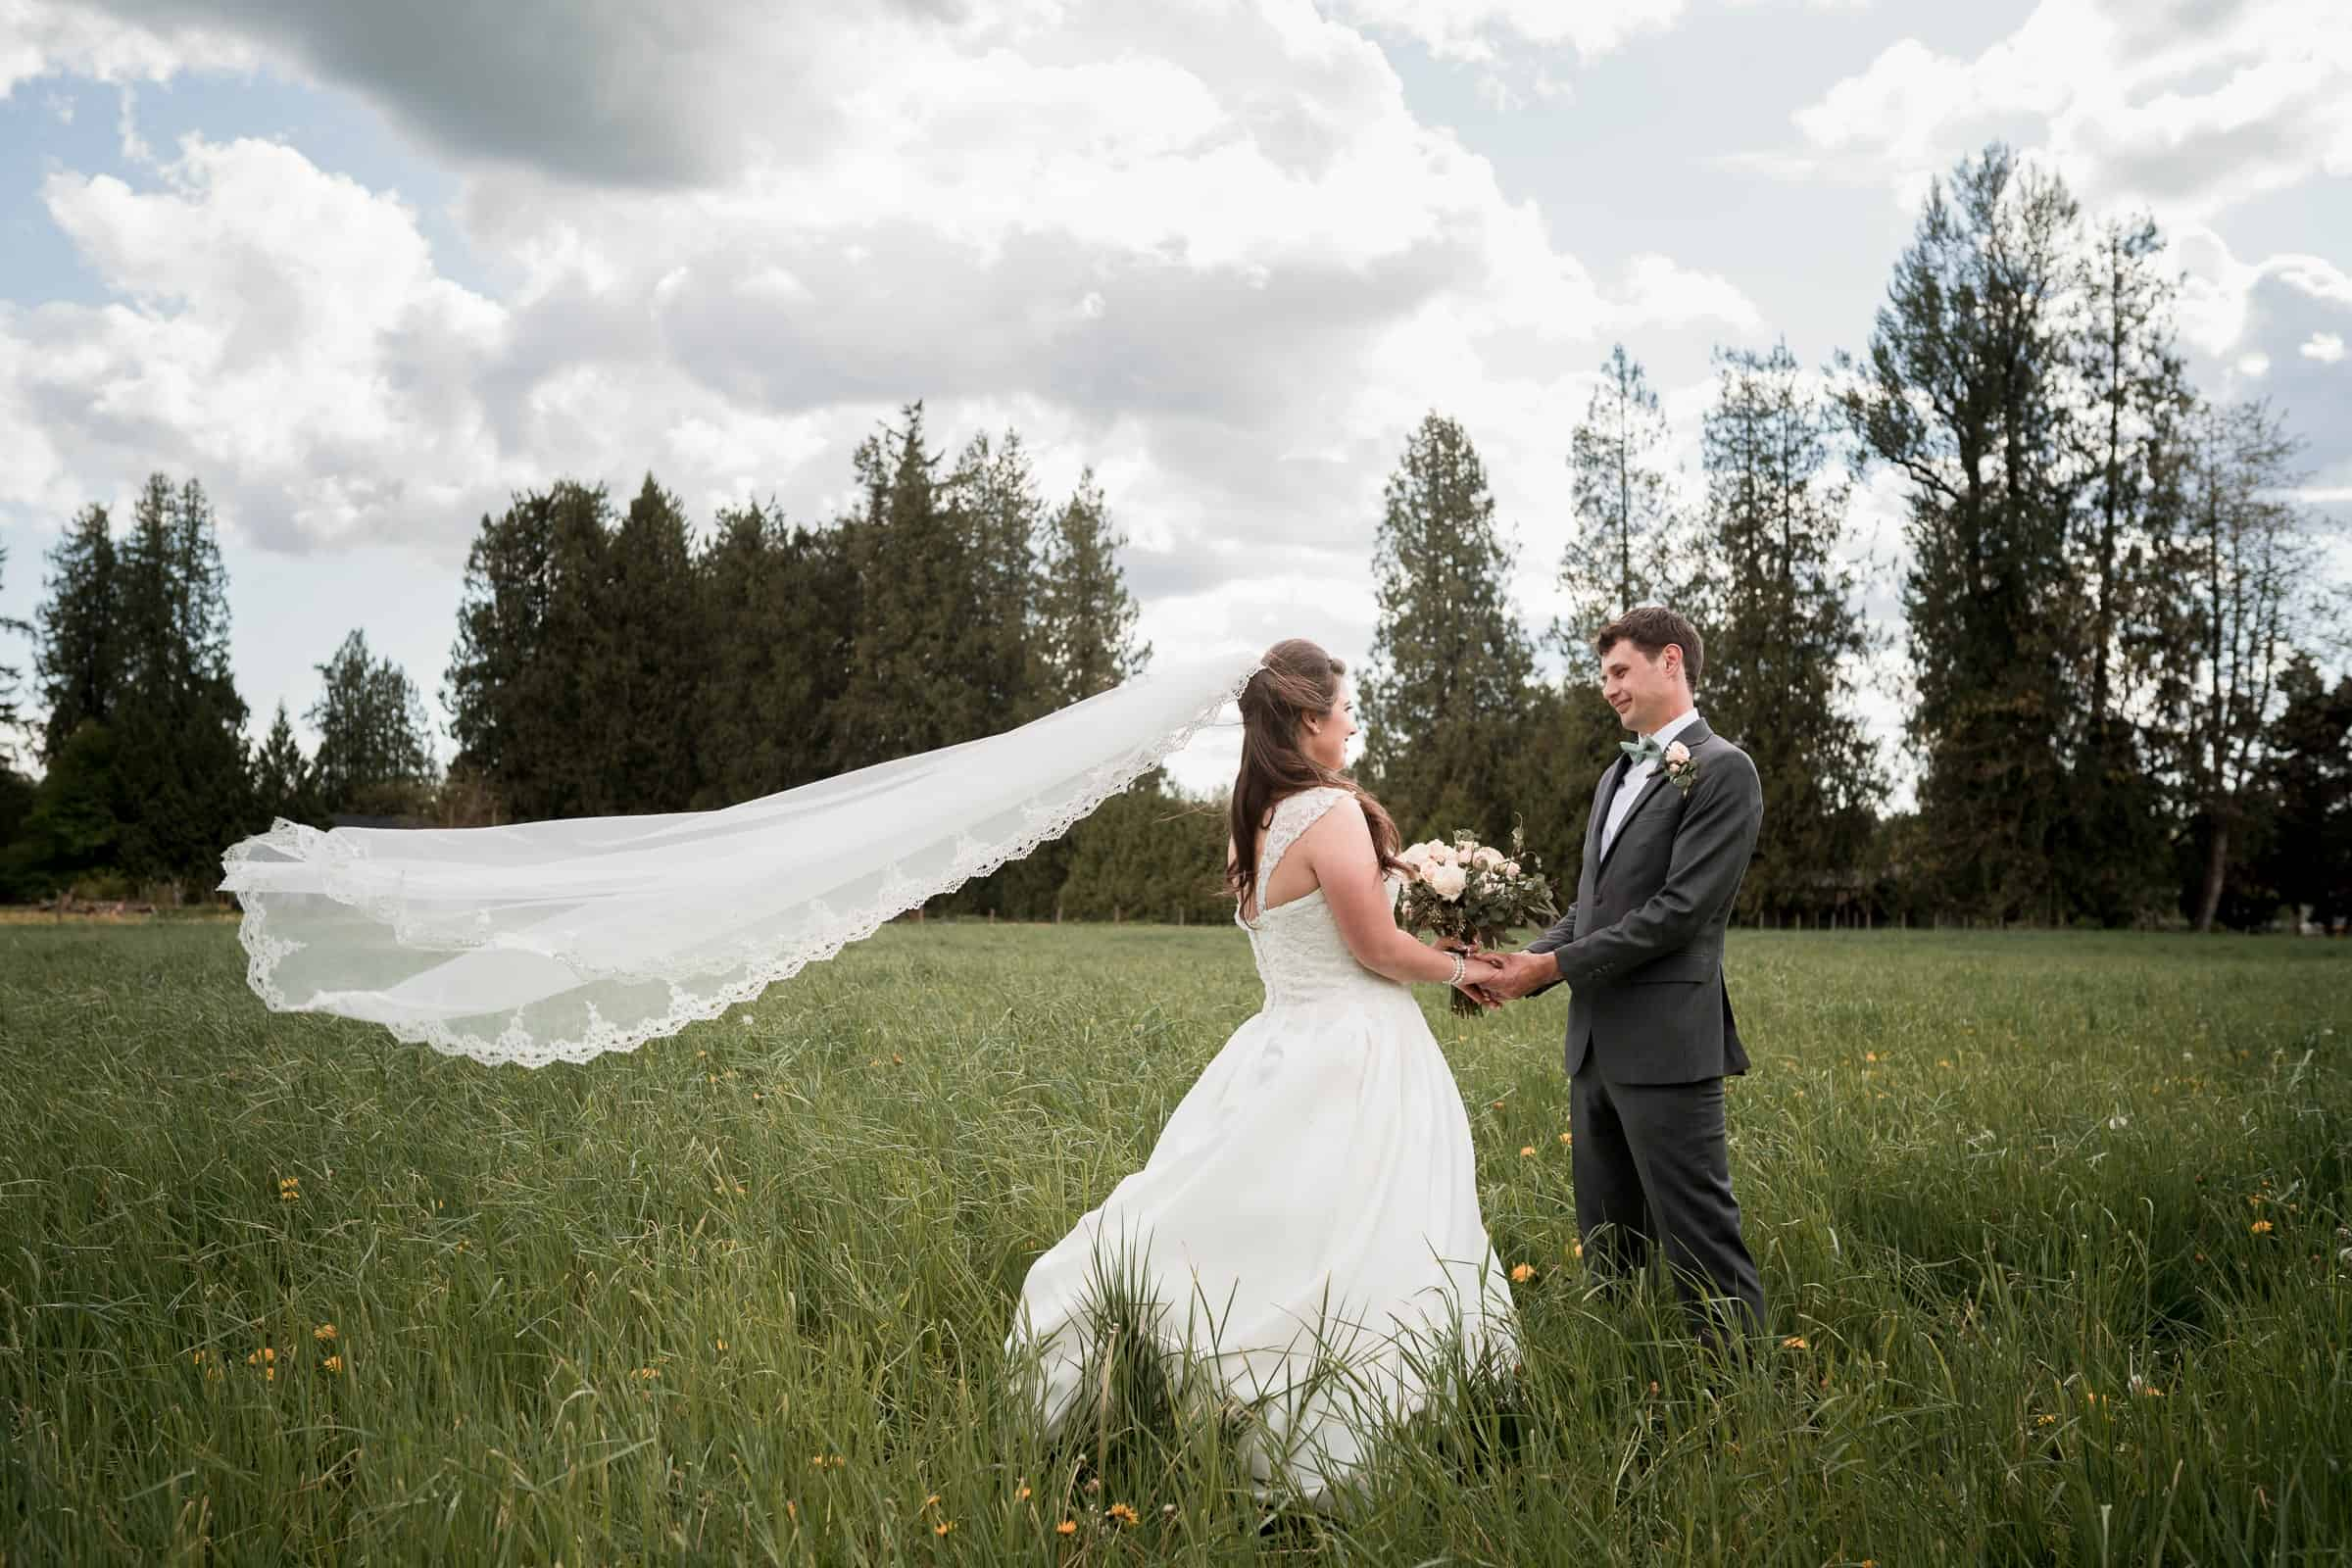 bride and groom in field with wind blowing veil